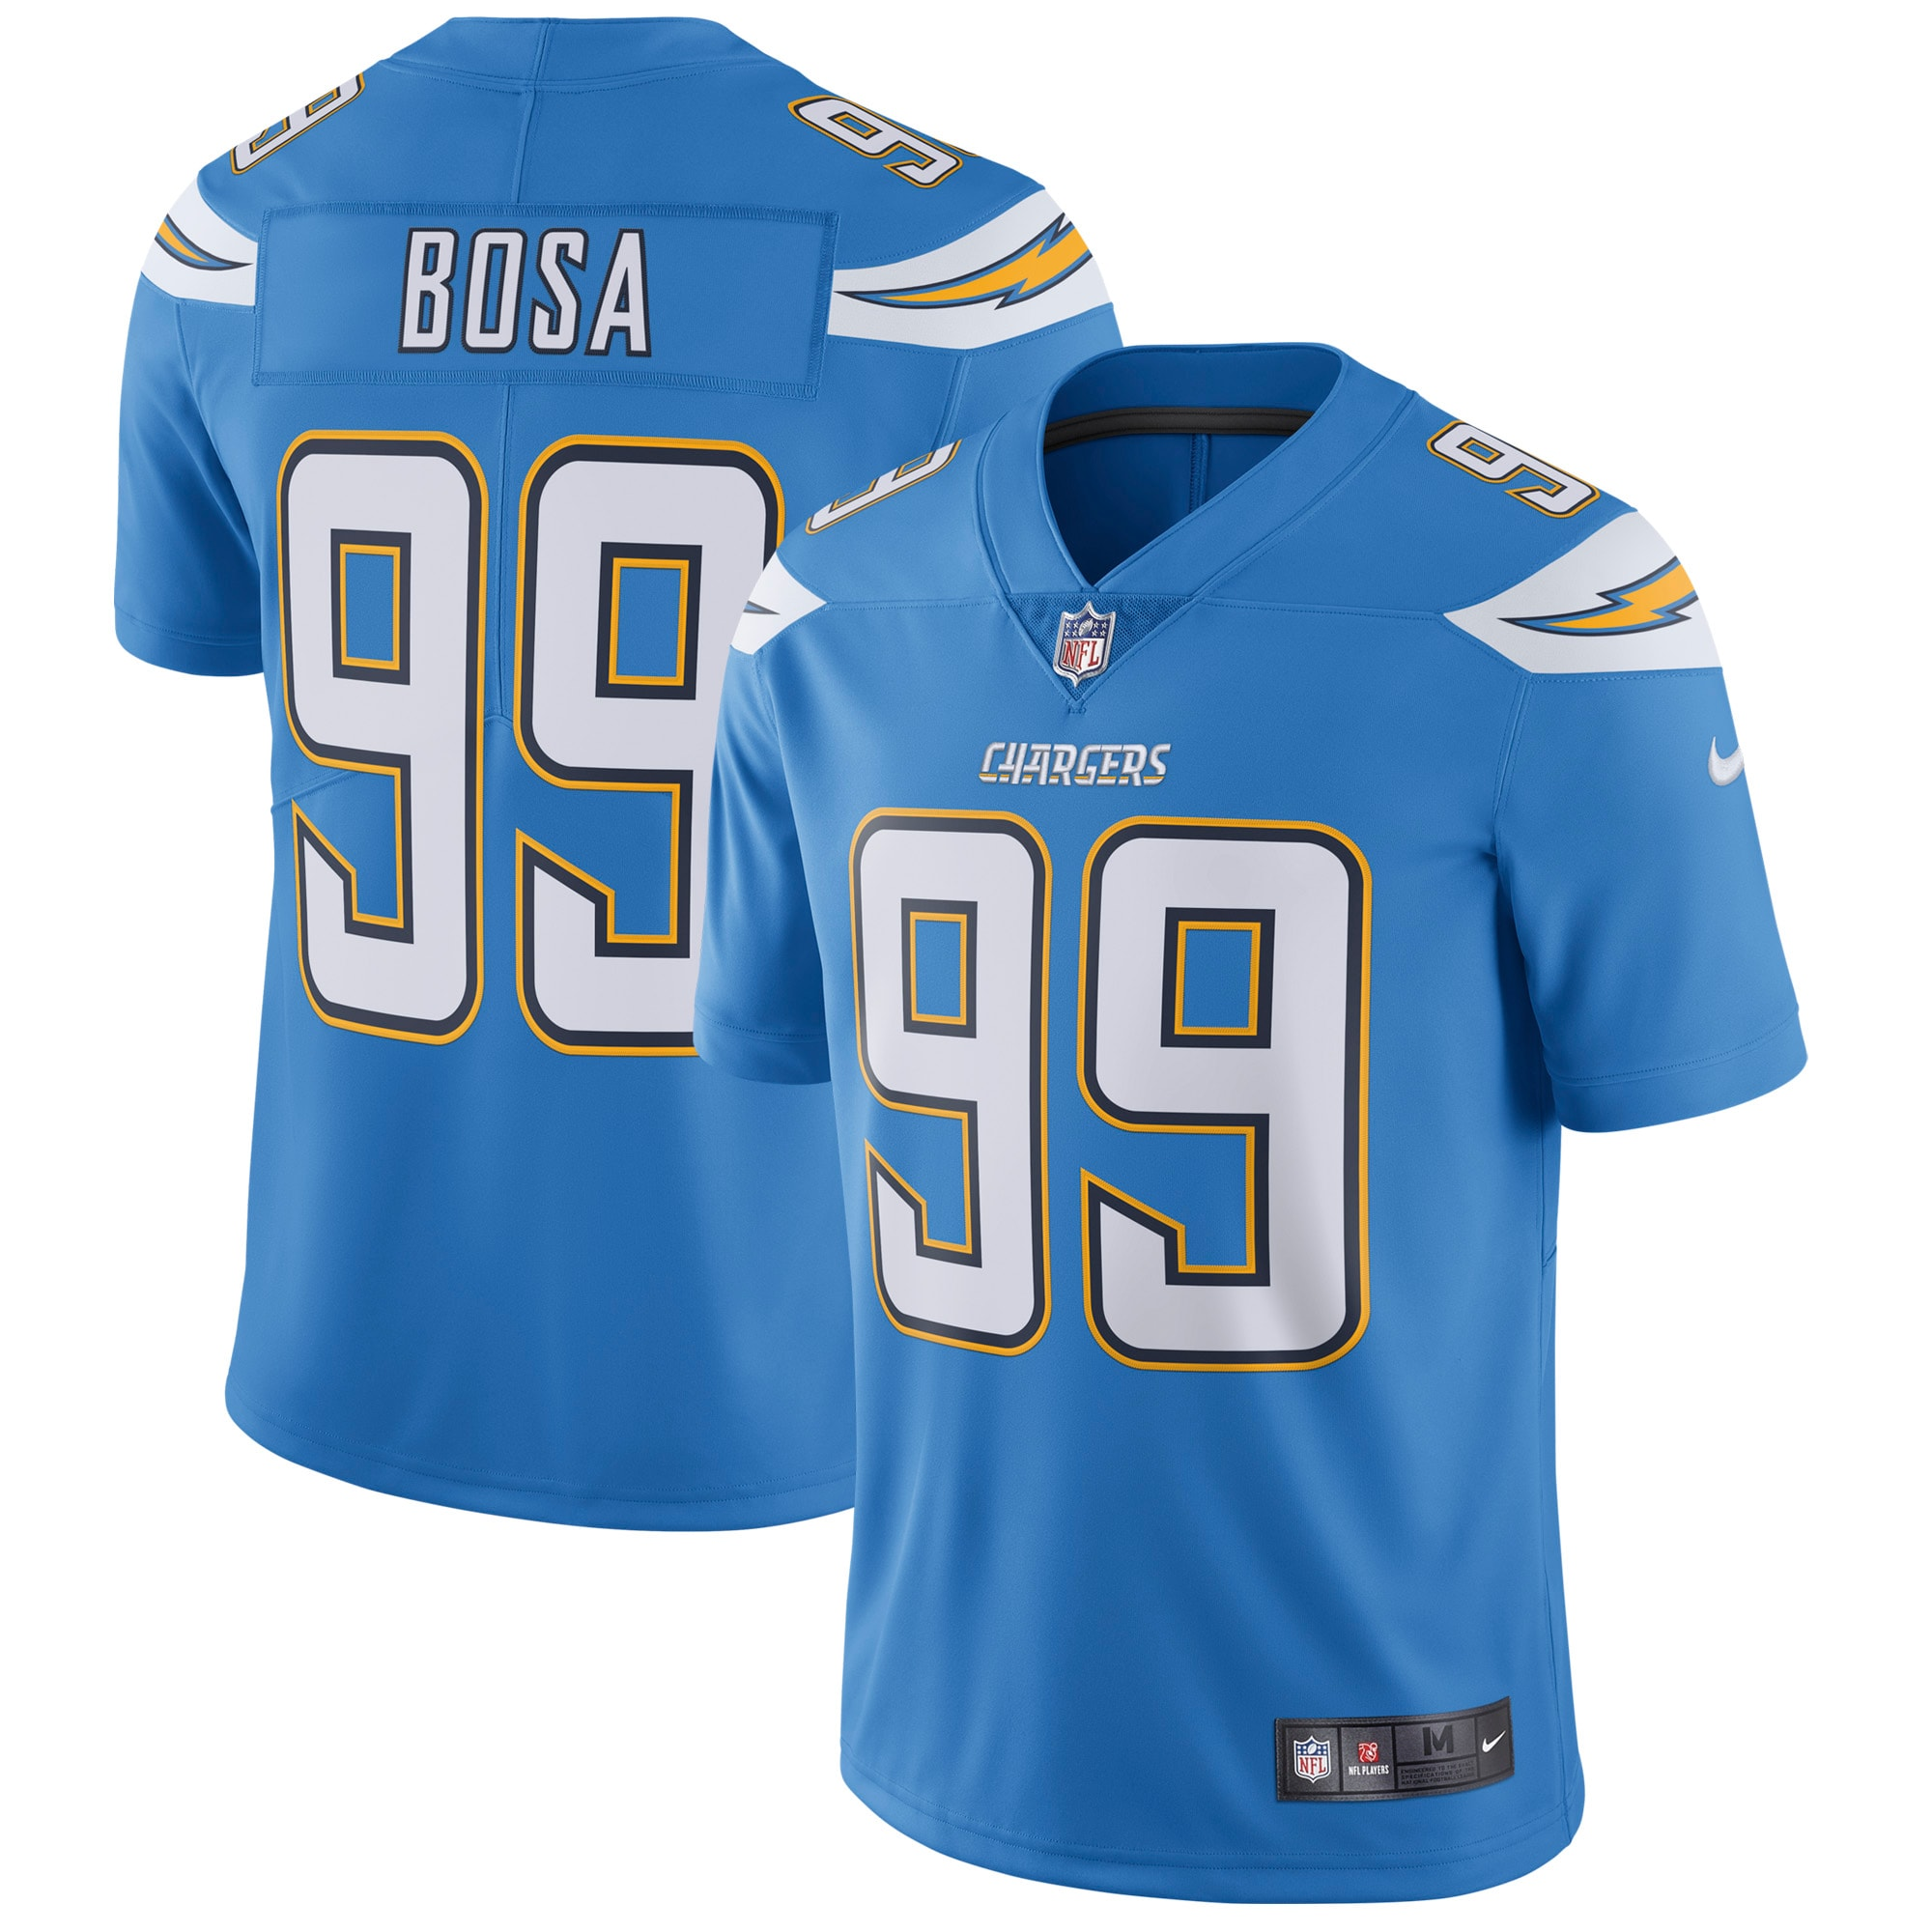 Joey Bosa Los Angeles Chargers Nike Vapor Untouchable Limited Player Jersey - Powder Blue